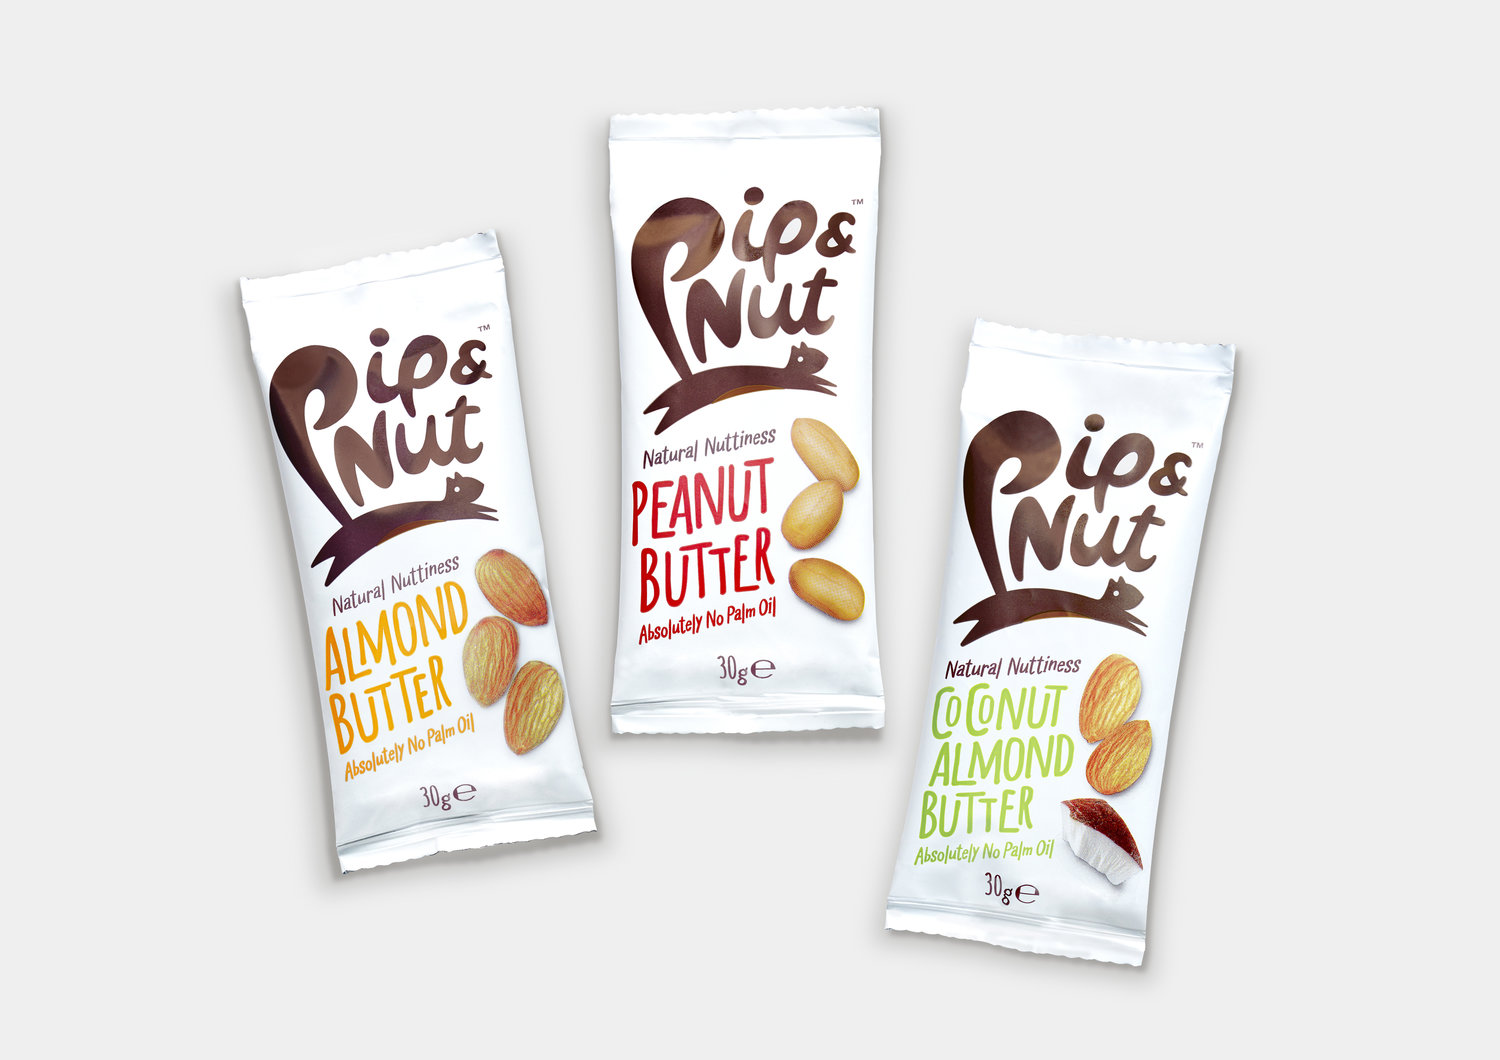 Pip_and_Nut_Sachet_LineUp_HR.jpg